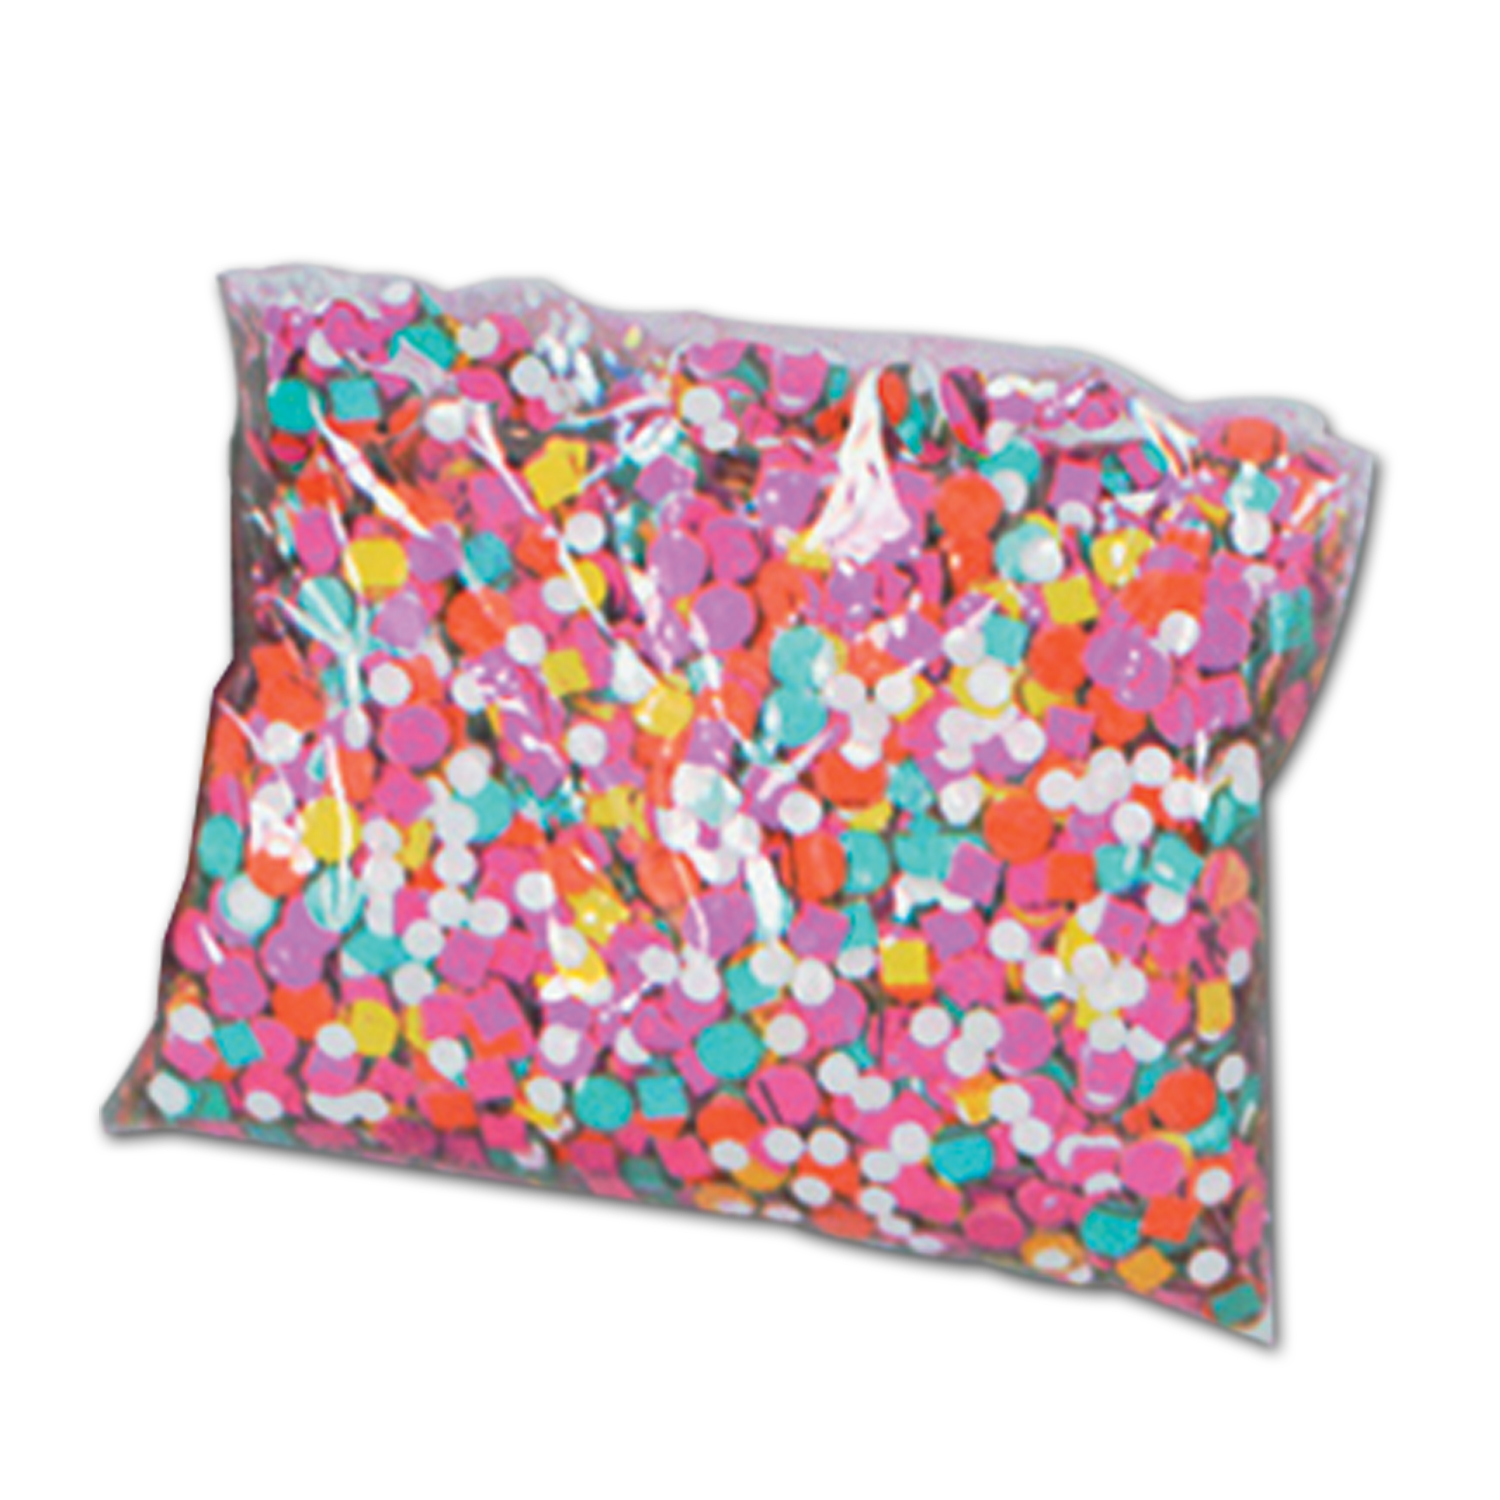 Two ounce bags of assorted colored confetti that is also assorted in size.